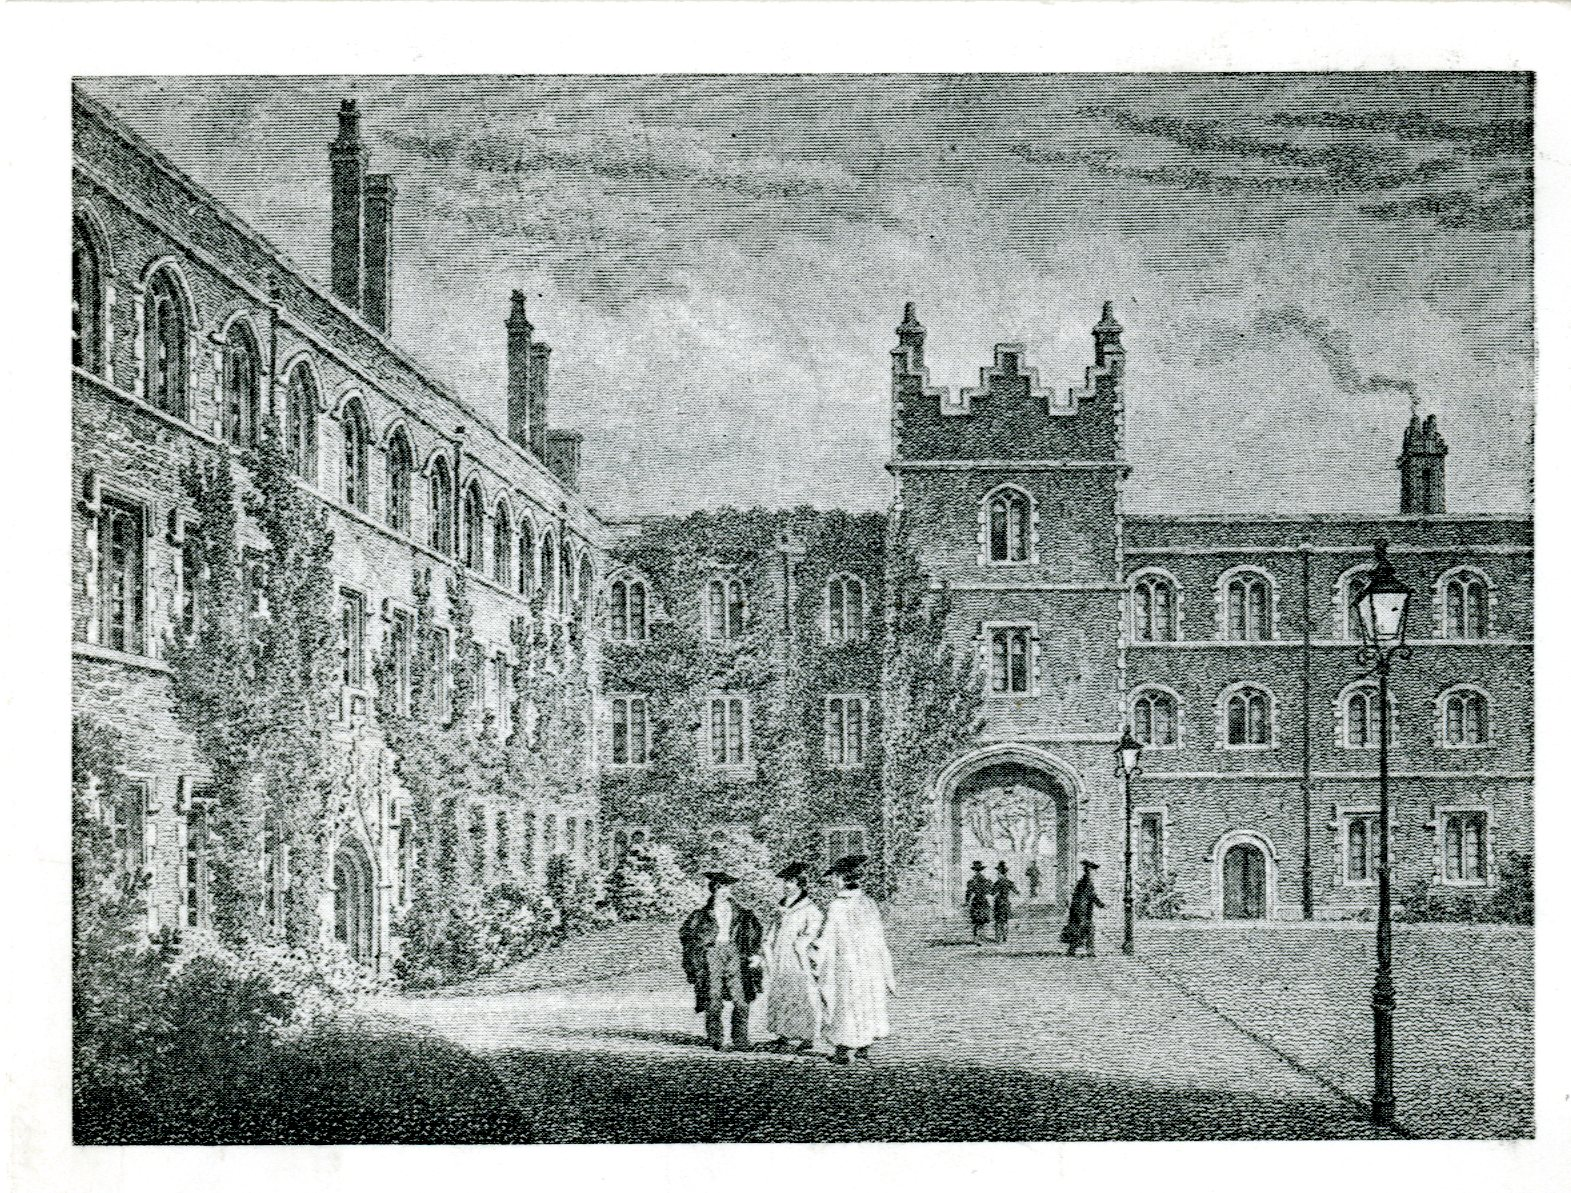 Engraving of First Court in about 1830. Christmas card 1980.